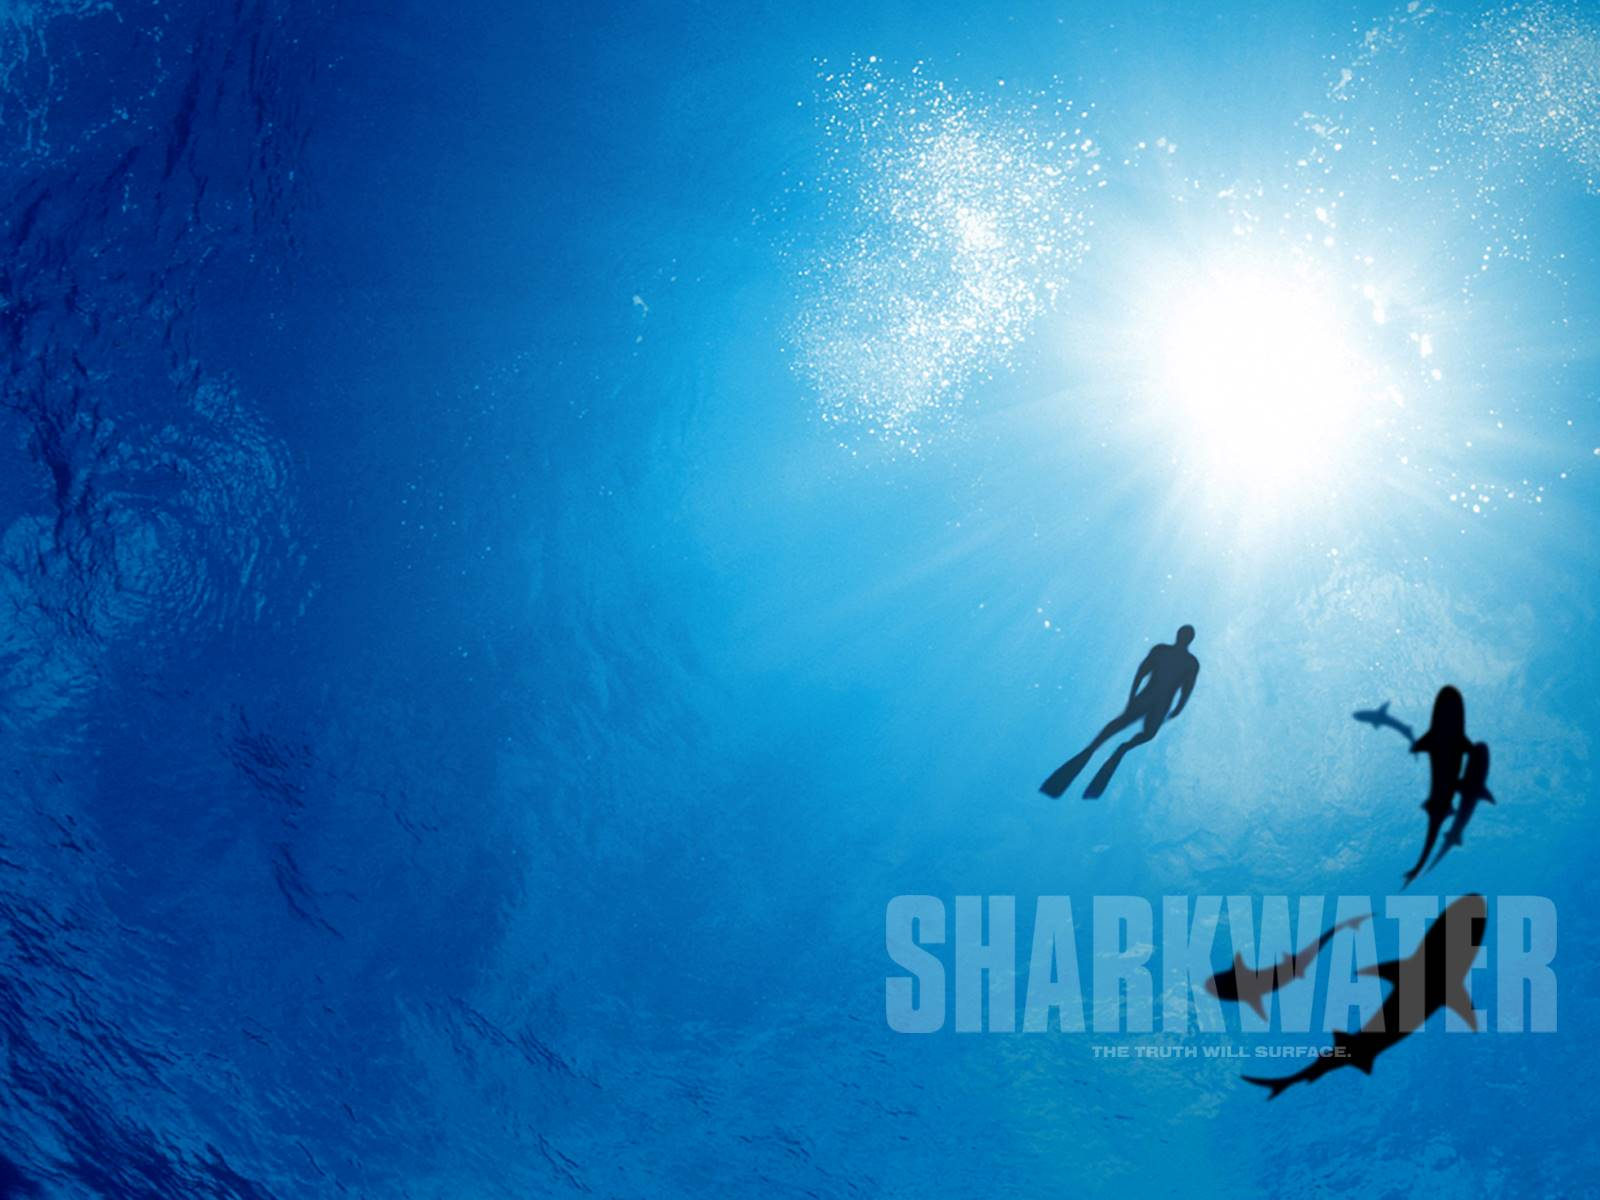 Sharkwater Poster